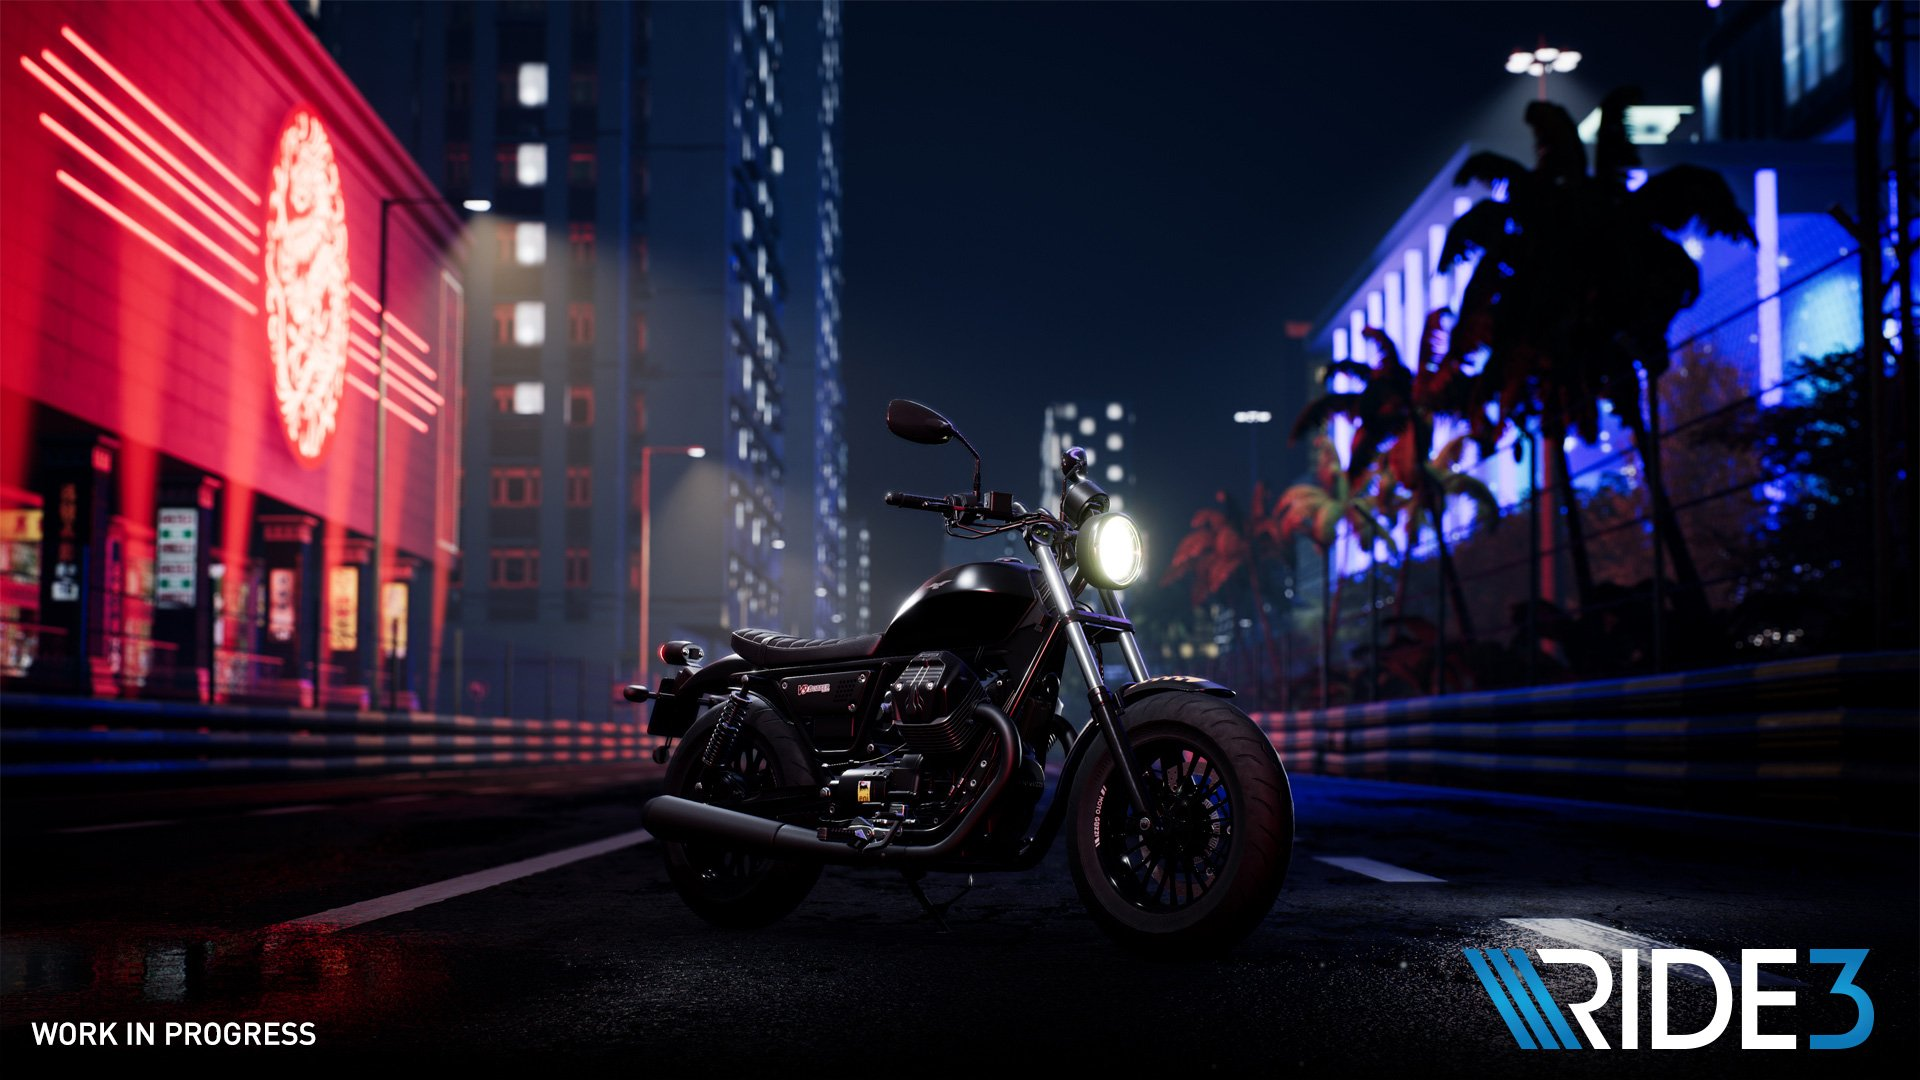 Ride 3 preview 1